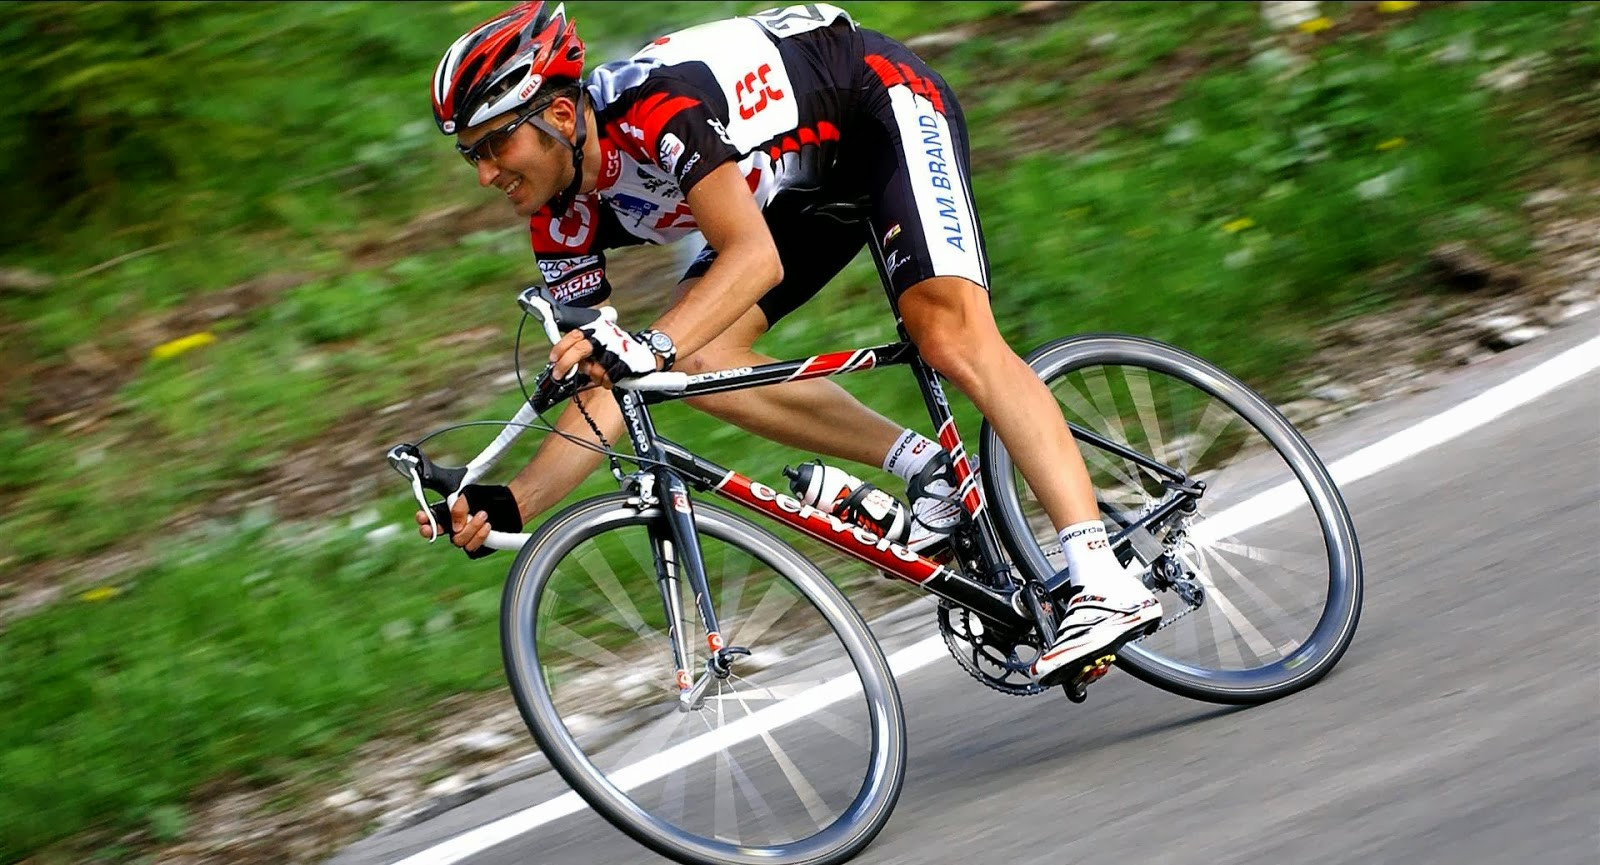 Cycling hd wallpapers ~ HD WALLPAPERS